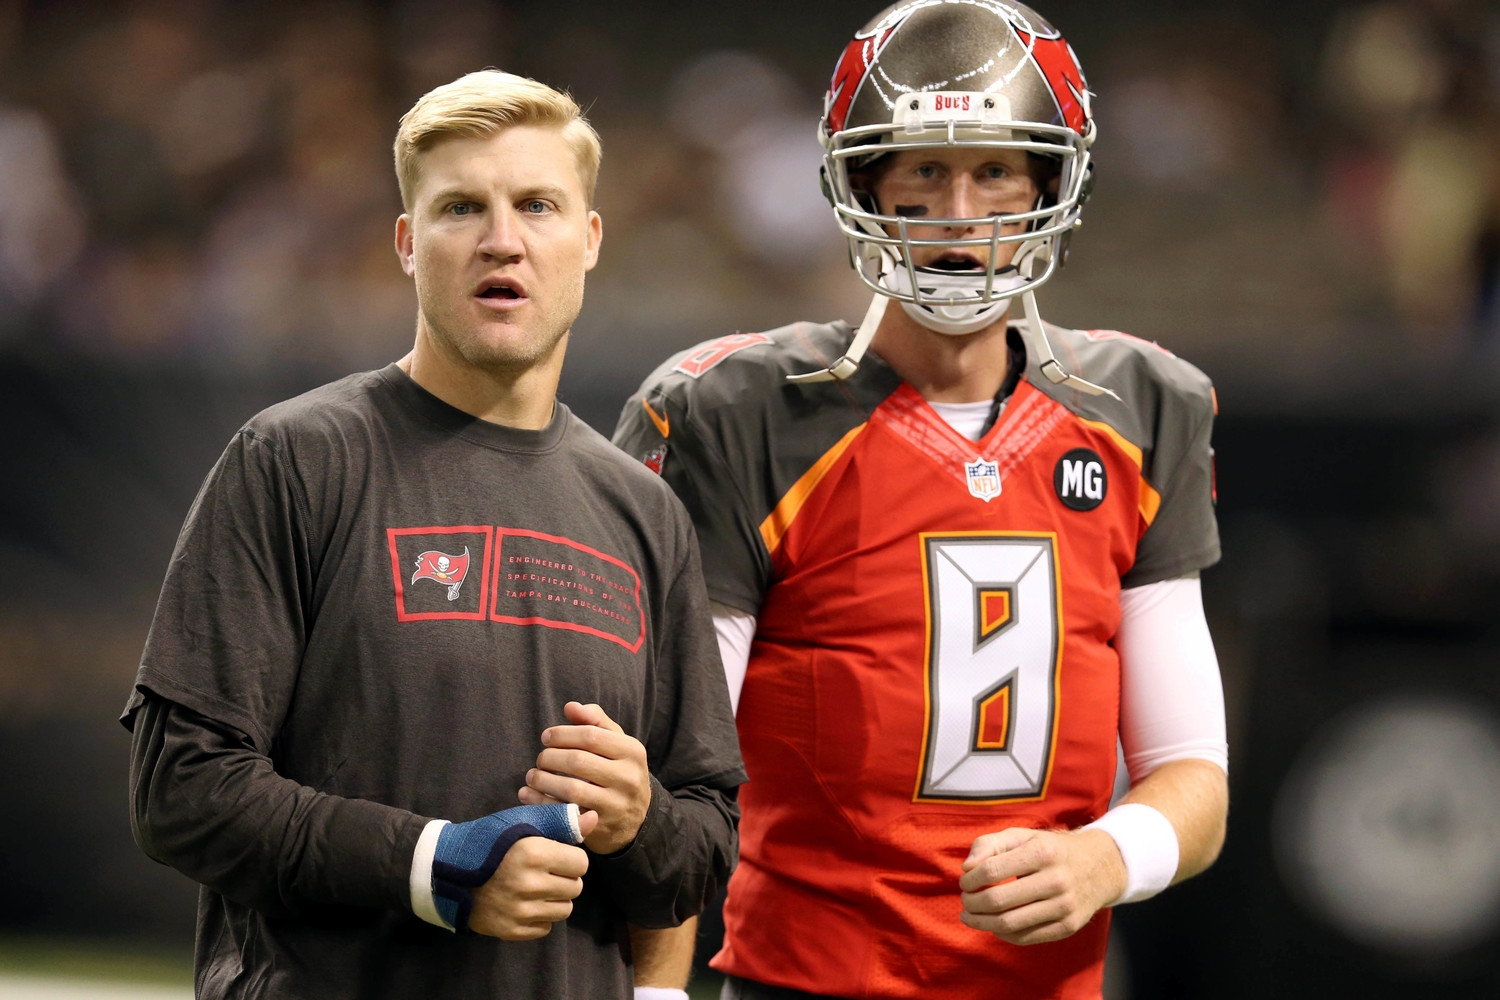 Mike Glennon, seen here with former child star Zachary Ty Bryan, or Josh McCown. Can't really tell.